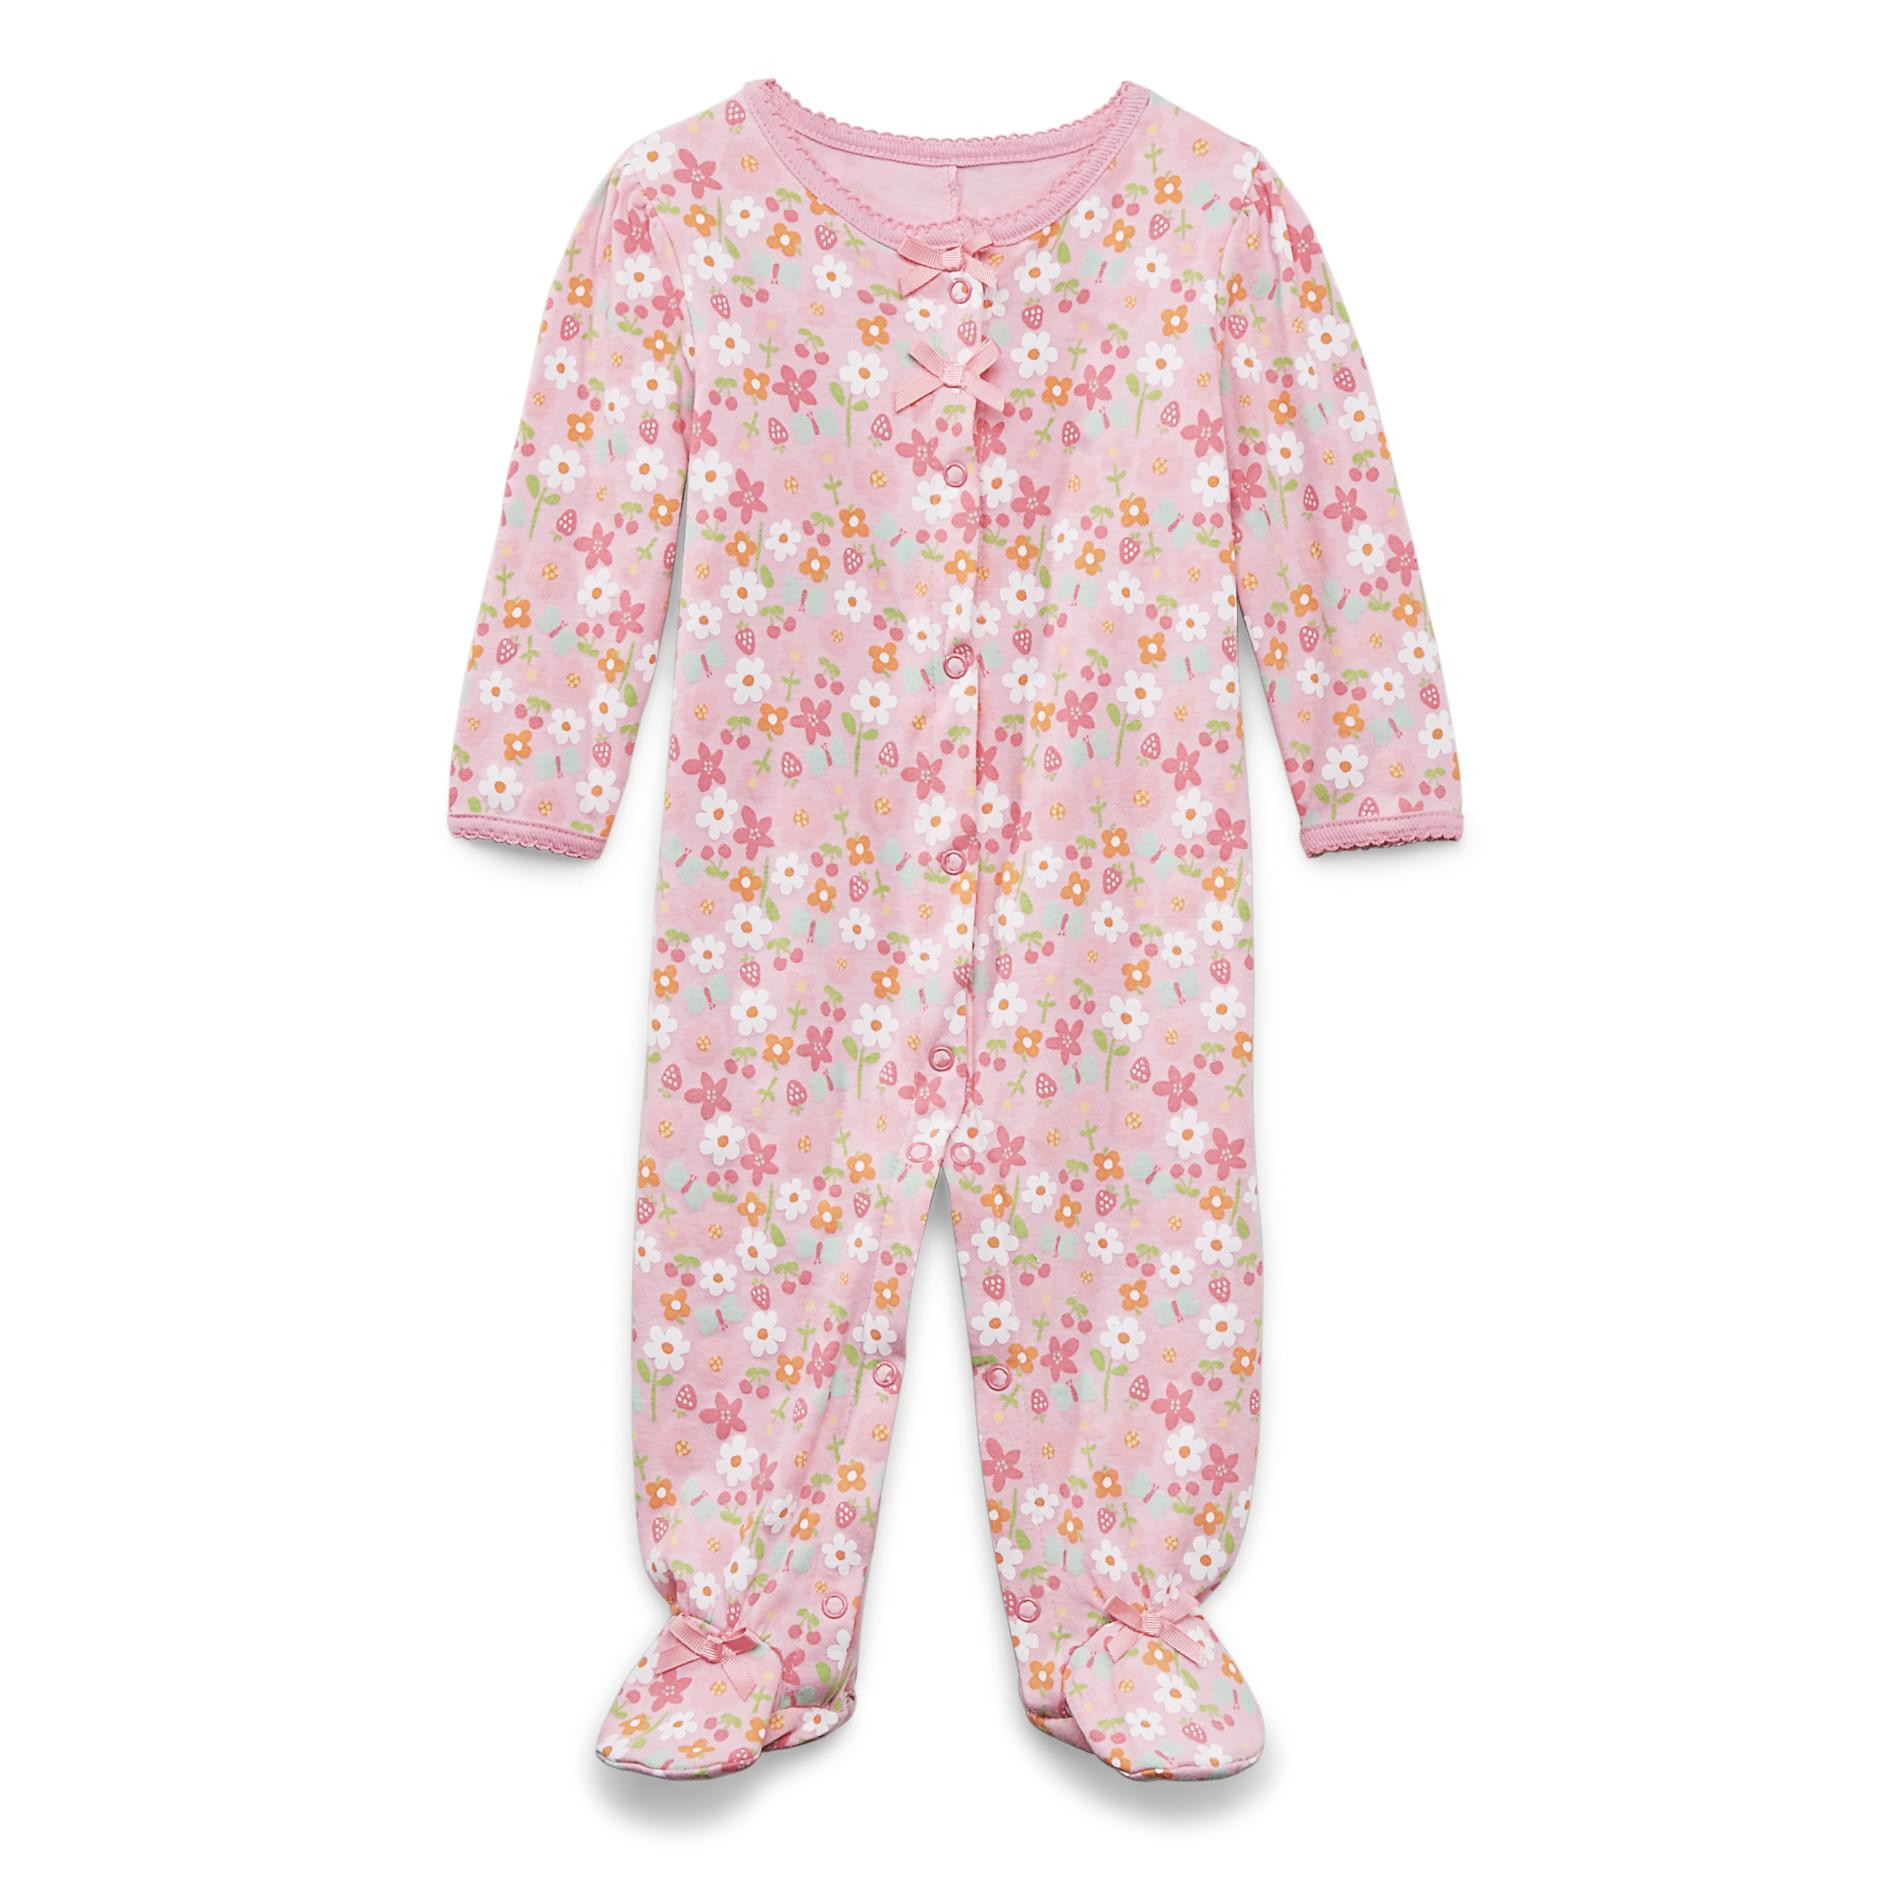 Carter s Infant & Toddler Girl s Footed Sleeper Pajamas